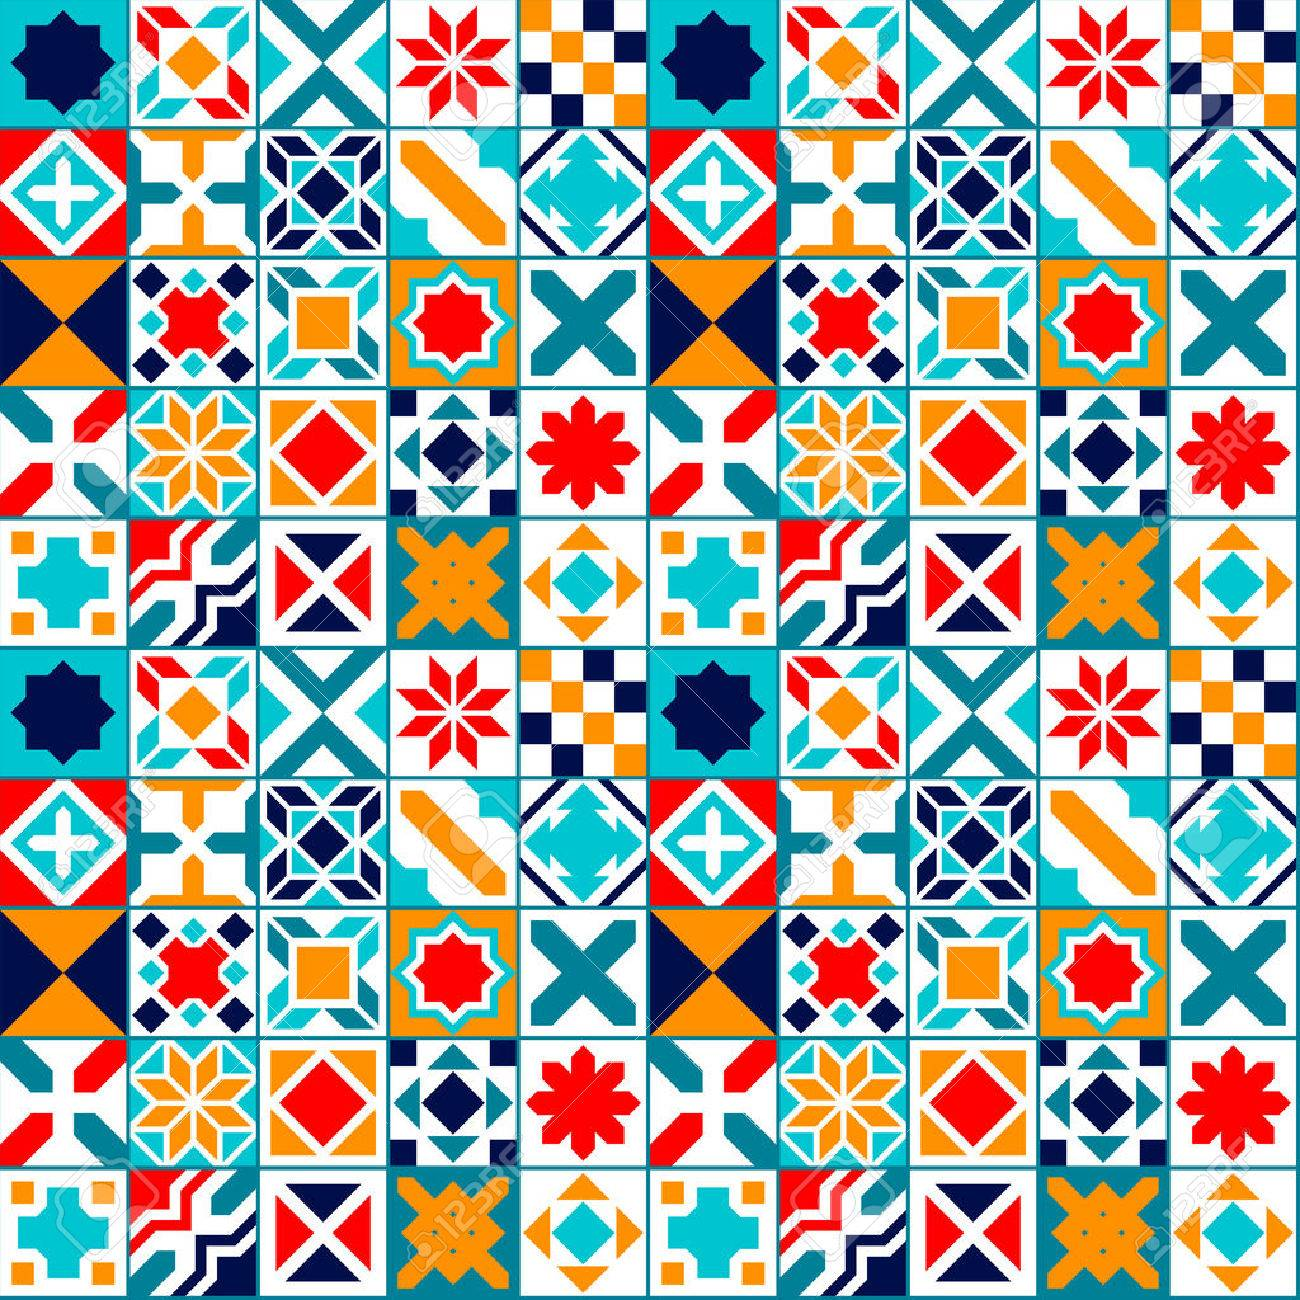 Colorful geometric tiles seamless pattern, vector background - 46777806